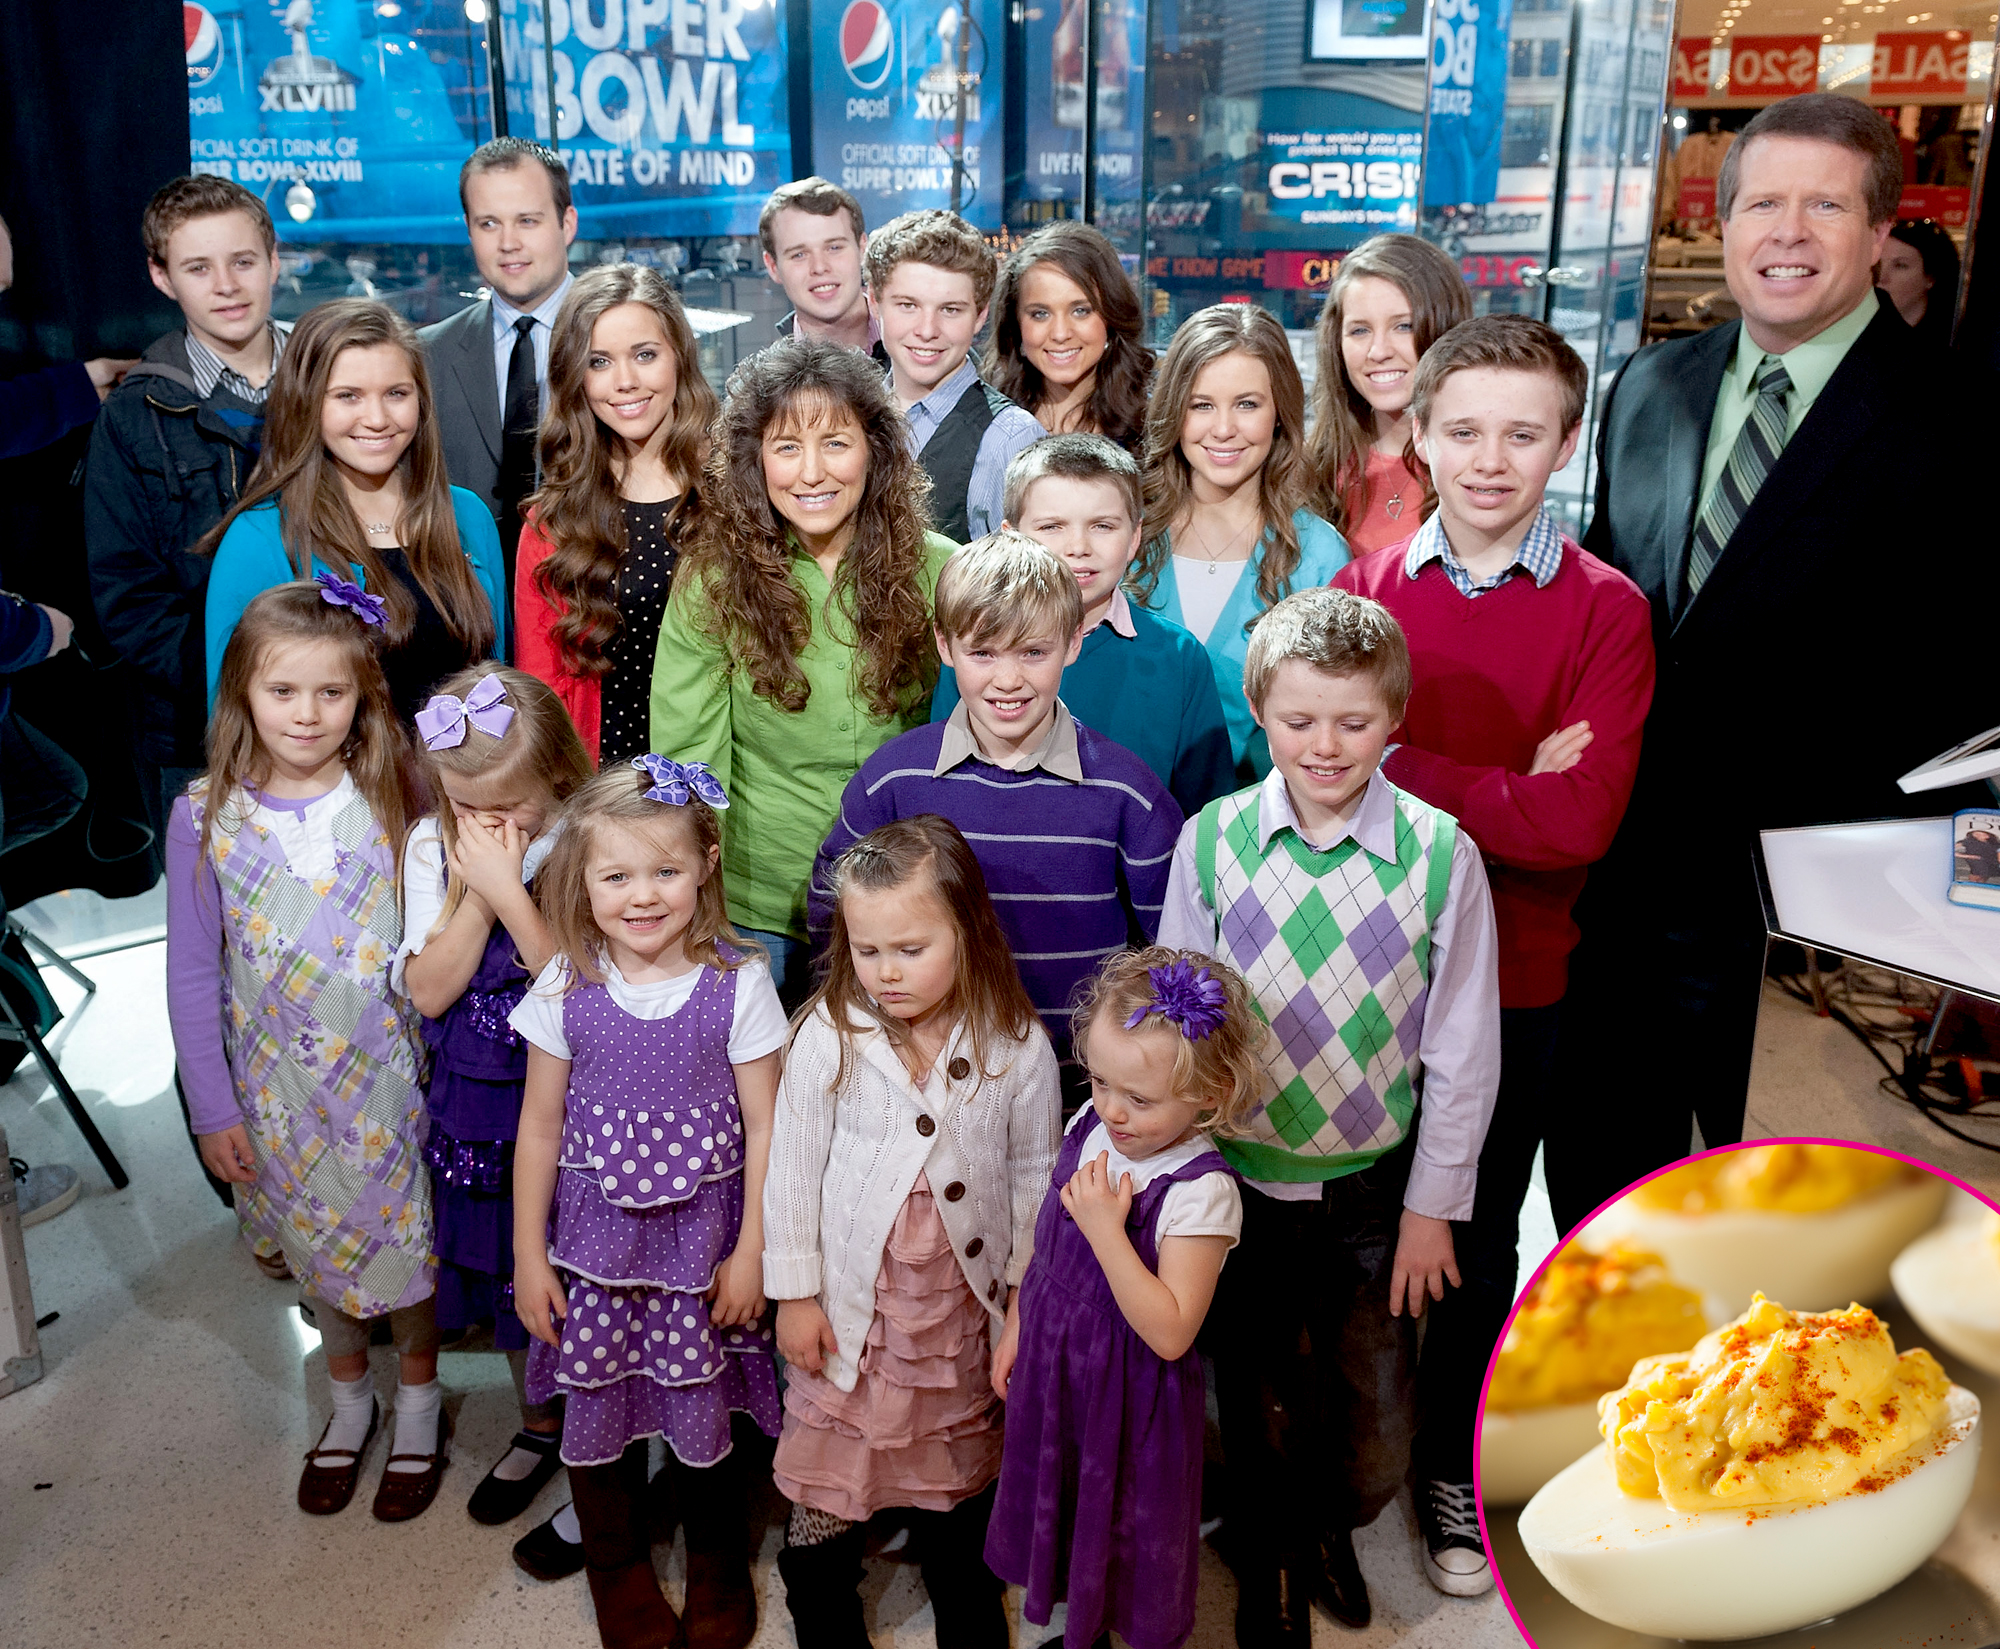 """Duggars-and-deviled-eggs - The reality TV family caused a bit of a stir in April 2019 when it was revealed that they've literally taken the """"devil"""" out of deviled eggs. Instead of calling the popular party appetizer by its given name, the ever-expanding Christian clan refers to the dish as """"yellow pocket angel eggs."""""""